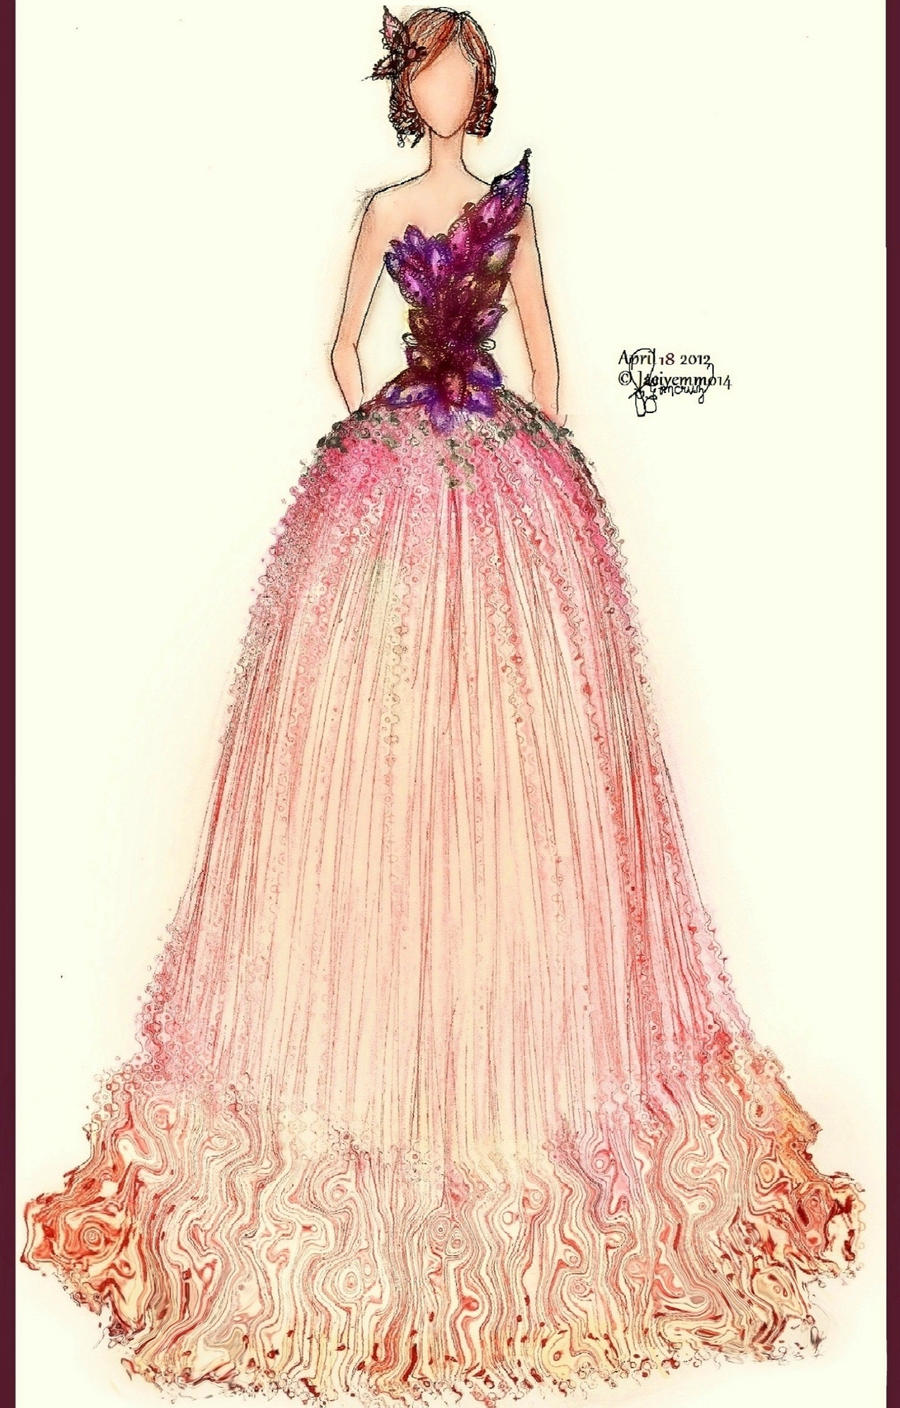 Lavander Gown by Jaeiyemm014